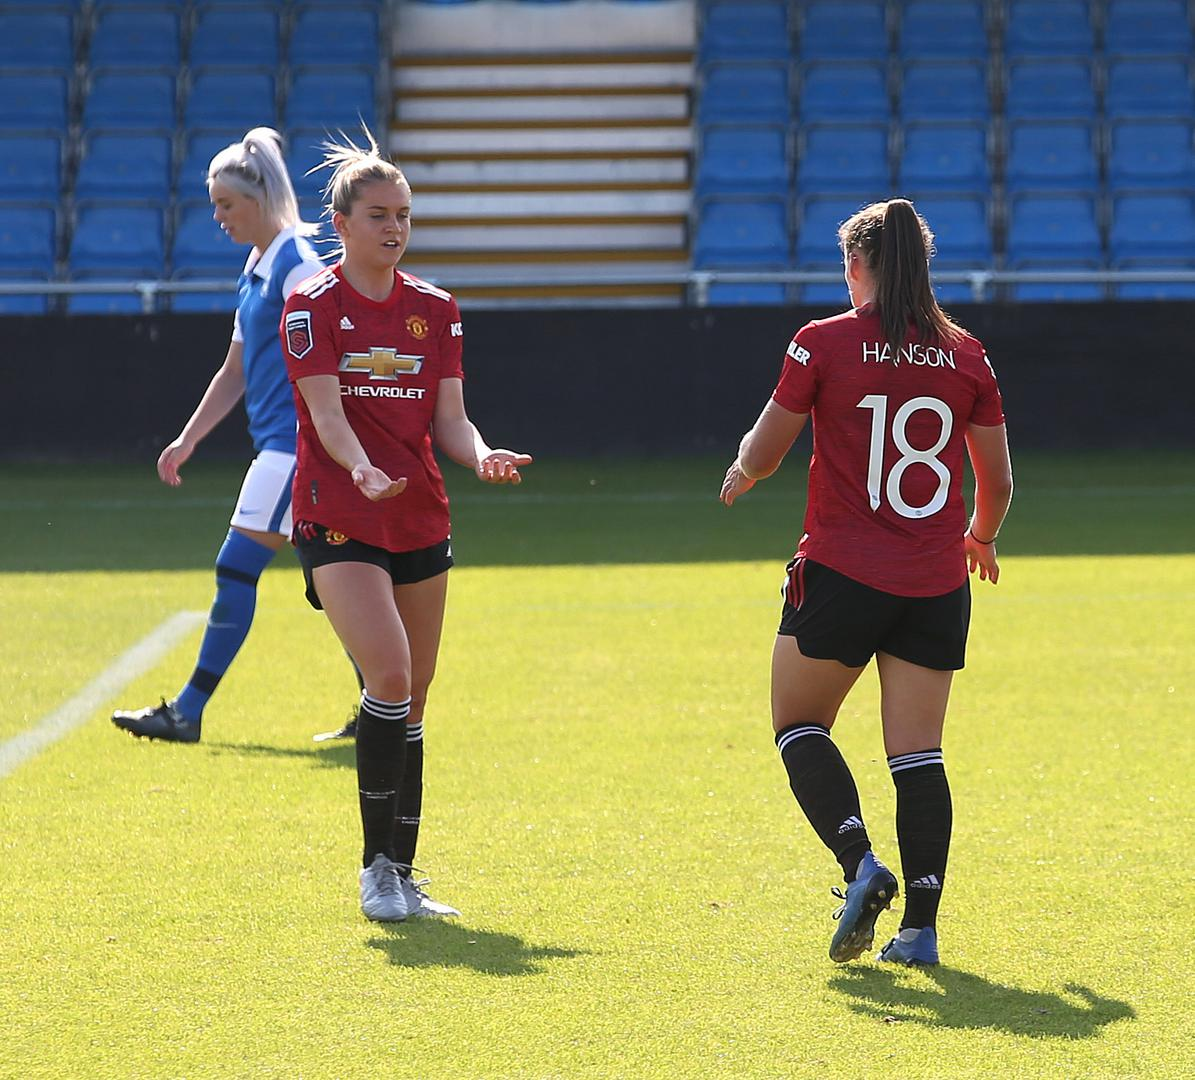 Alessia Russo celebrates a goal for Manchester United Women with team-mate Kirsty Hanson